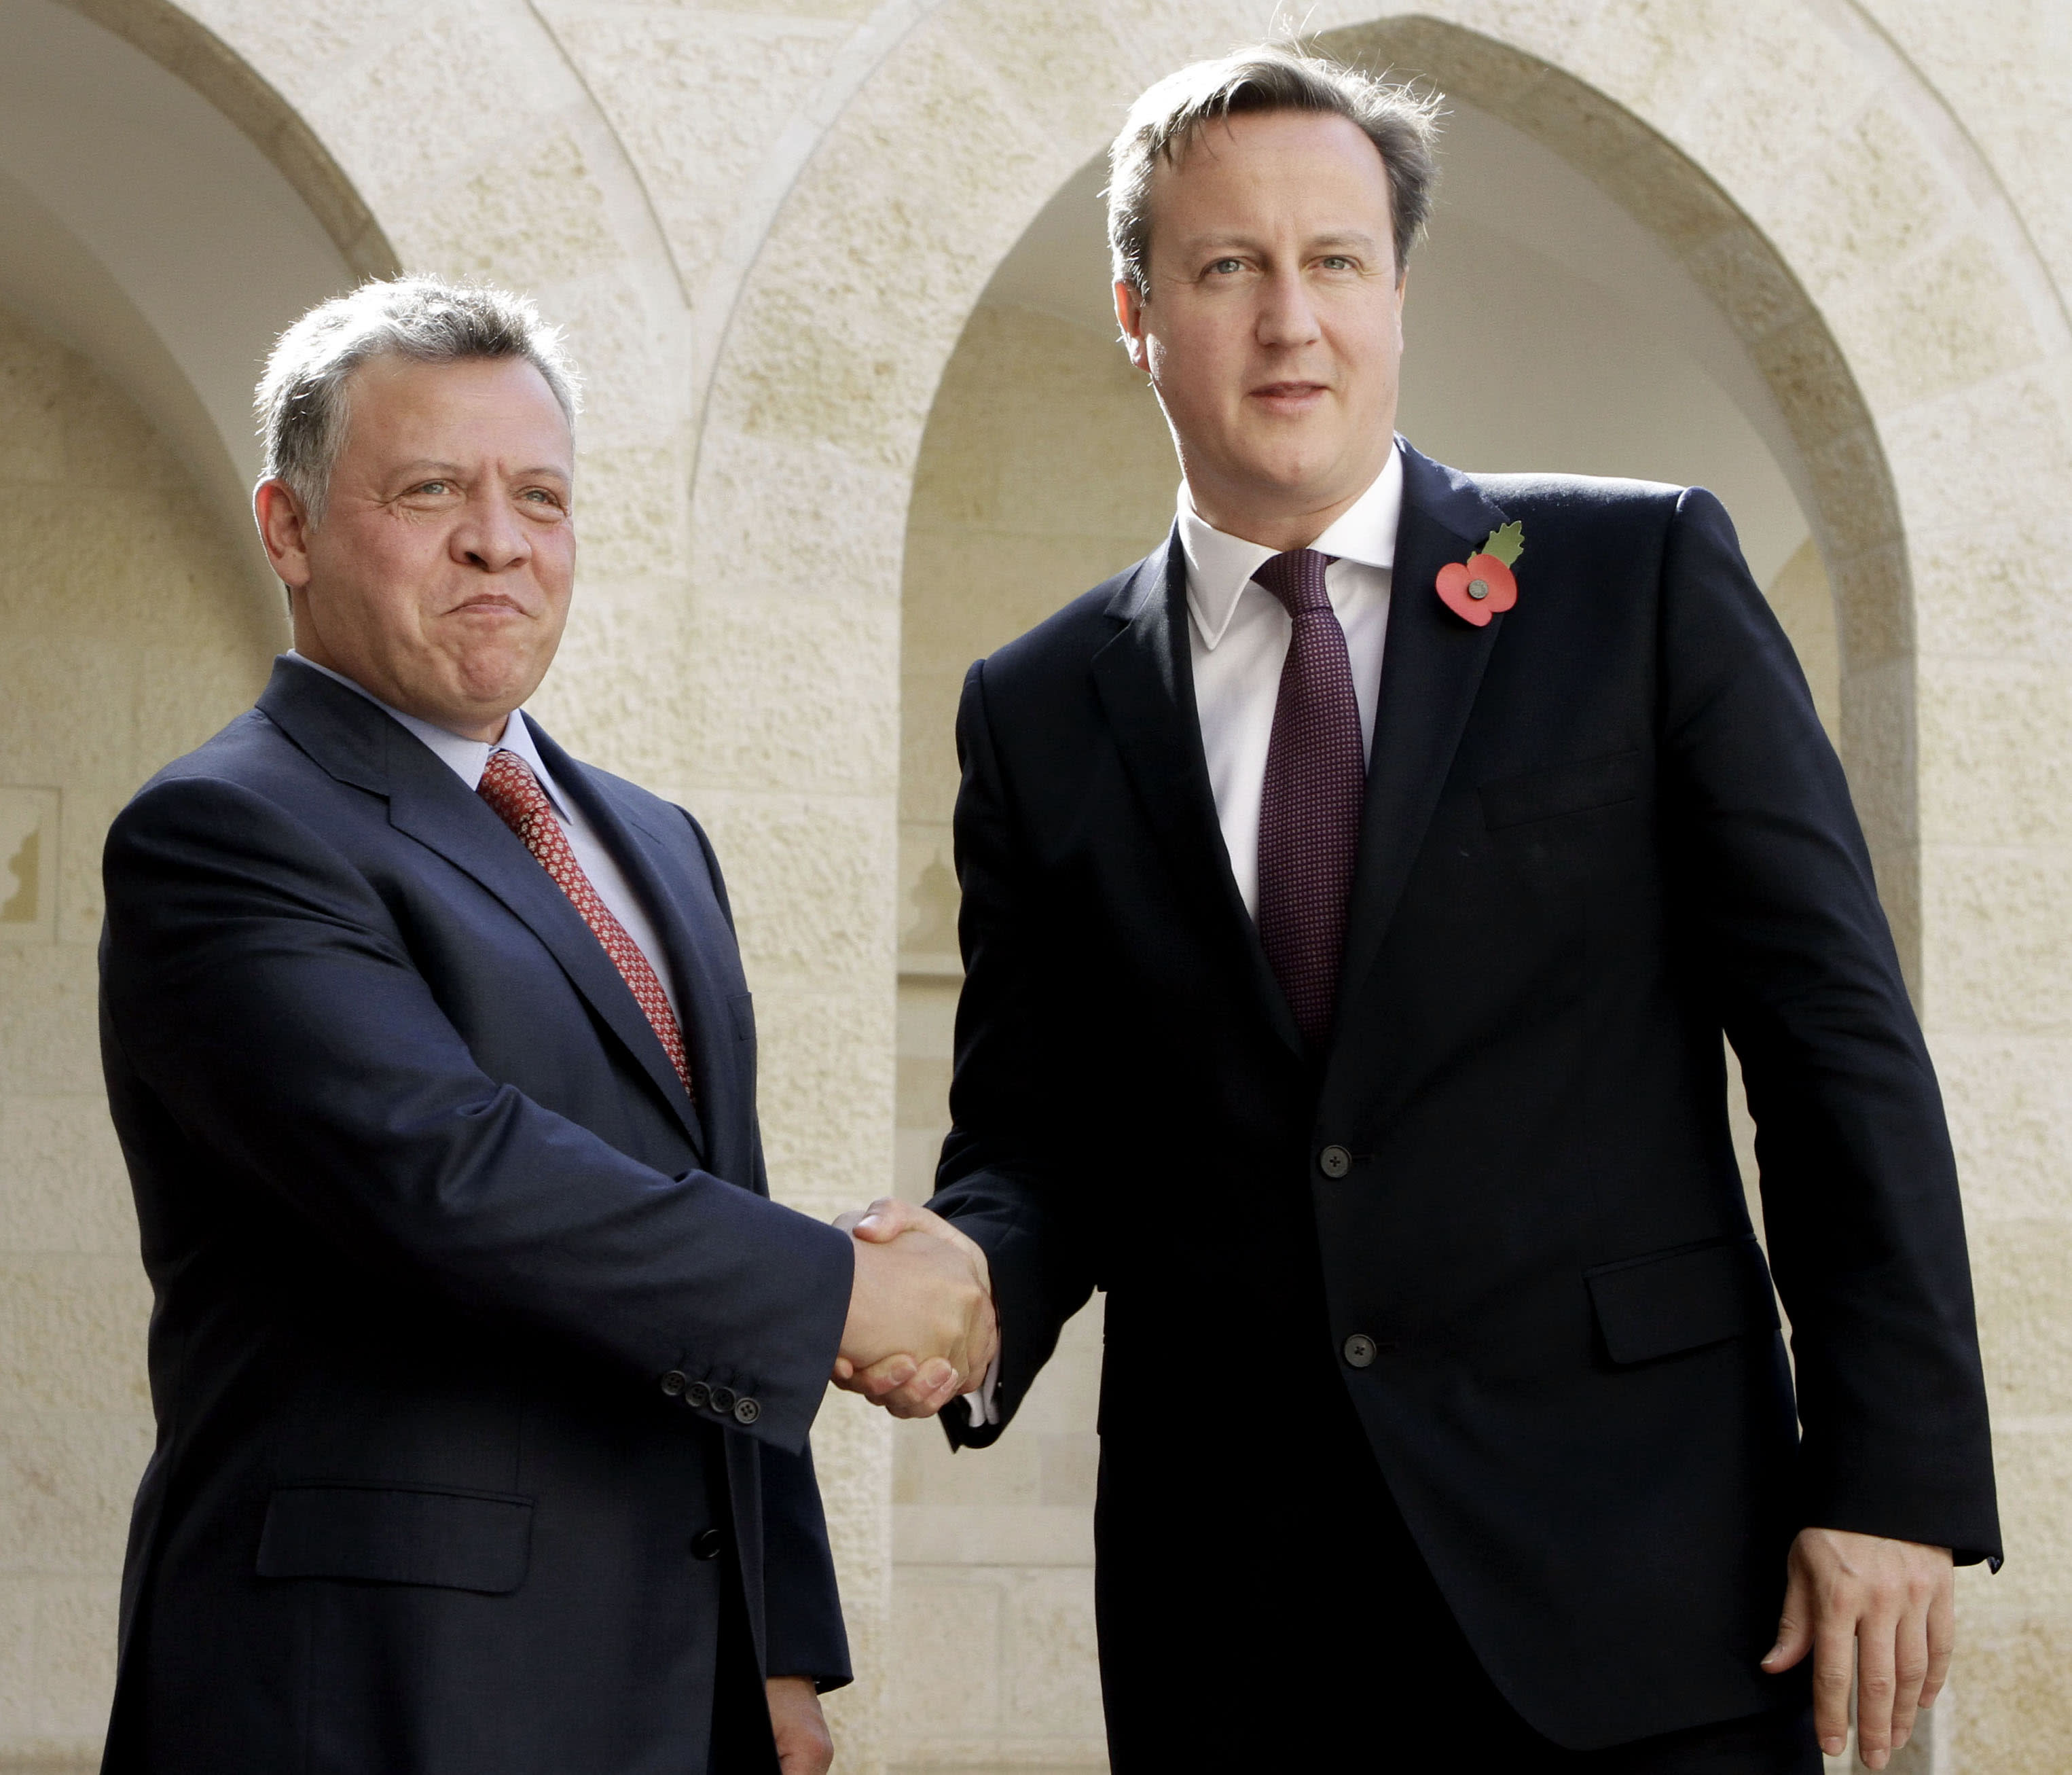 King Abdullah II of Jordan ,left, shake hands with British Prime Minister David Cameron at the Royal Palace in Amman, Jordan, Wednesday, Nov. 7 2012. Cameron is in the Kingdom on a short visit, as part of a regional tour. (AP Photo/Raad Adayleh)